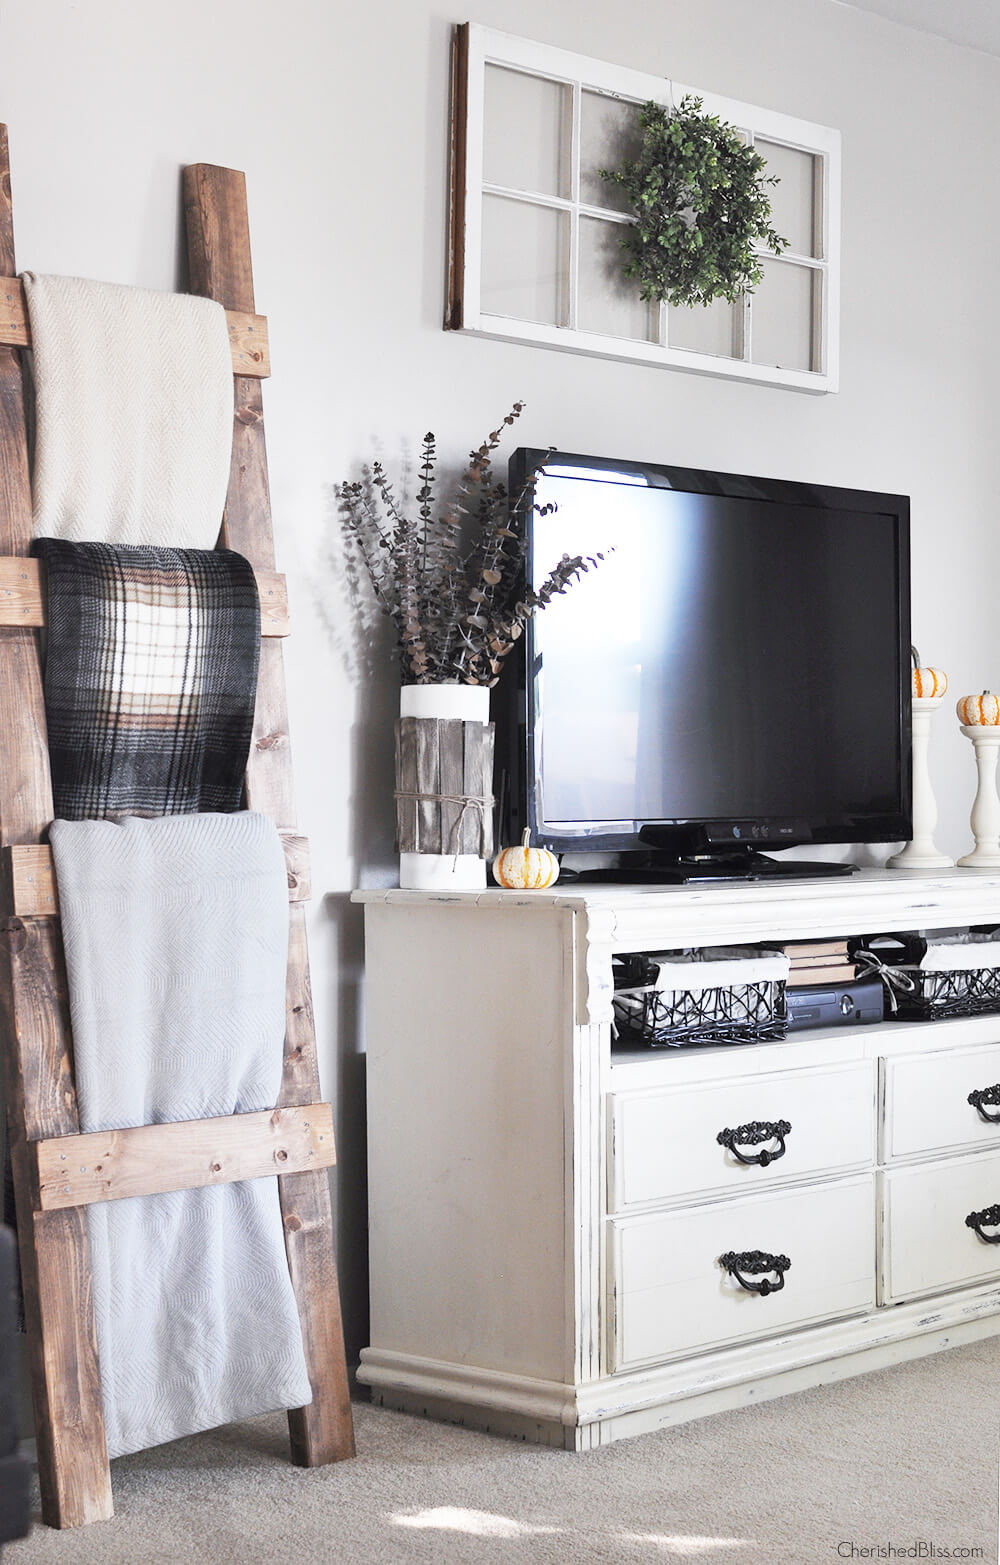 Quilt Display for Farmhouse Living Room Designs